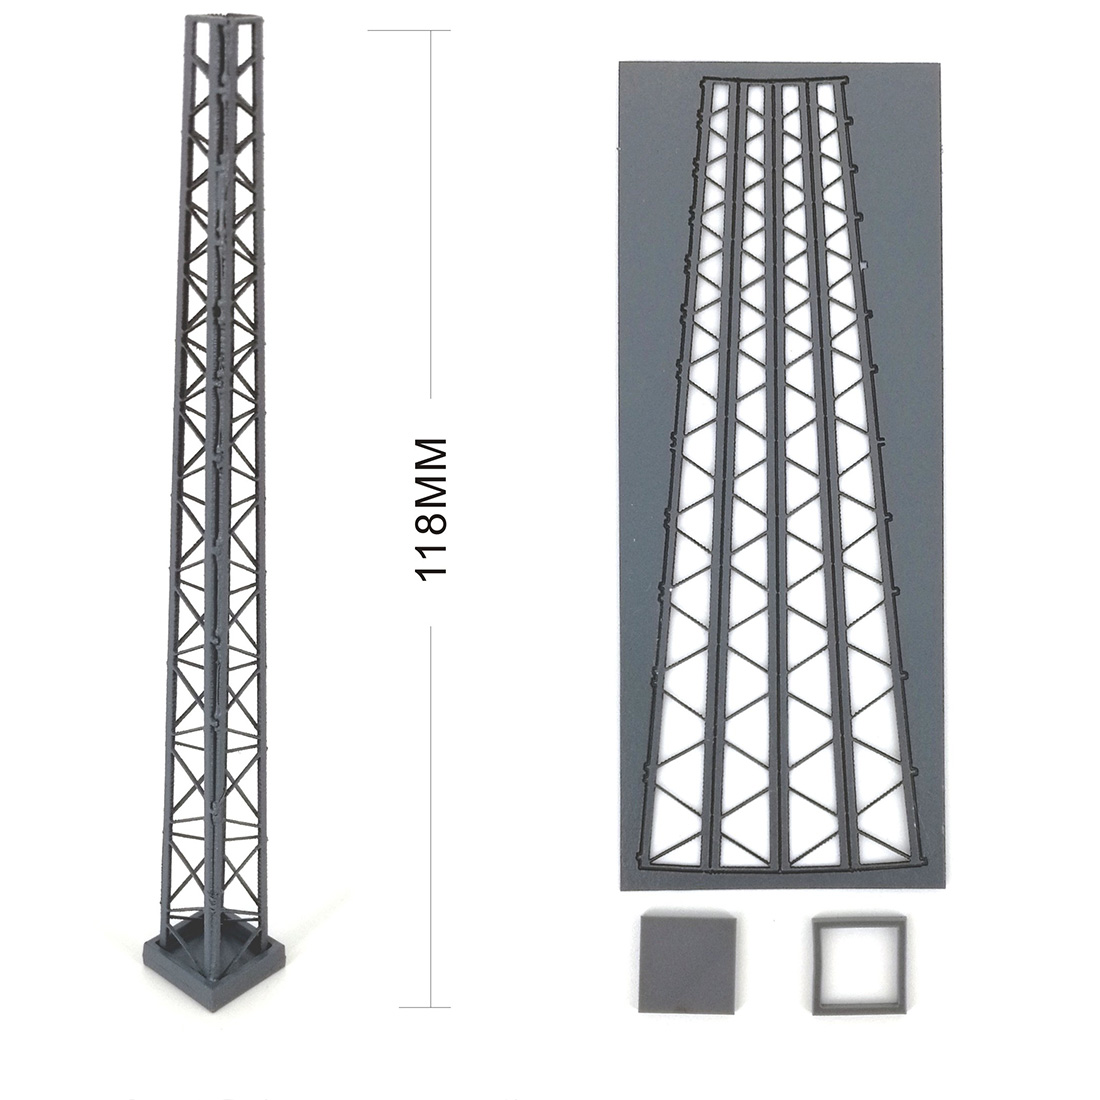 NFSTRIKE 1Pc 1:87 HO Scale Train Railway Scene Decoration Assembly Brackets Model For Sand Table Accessories